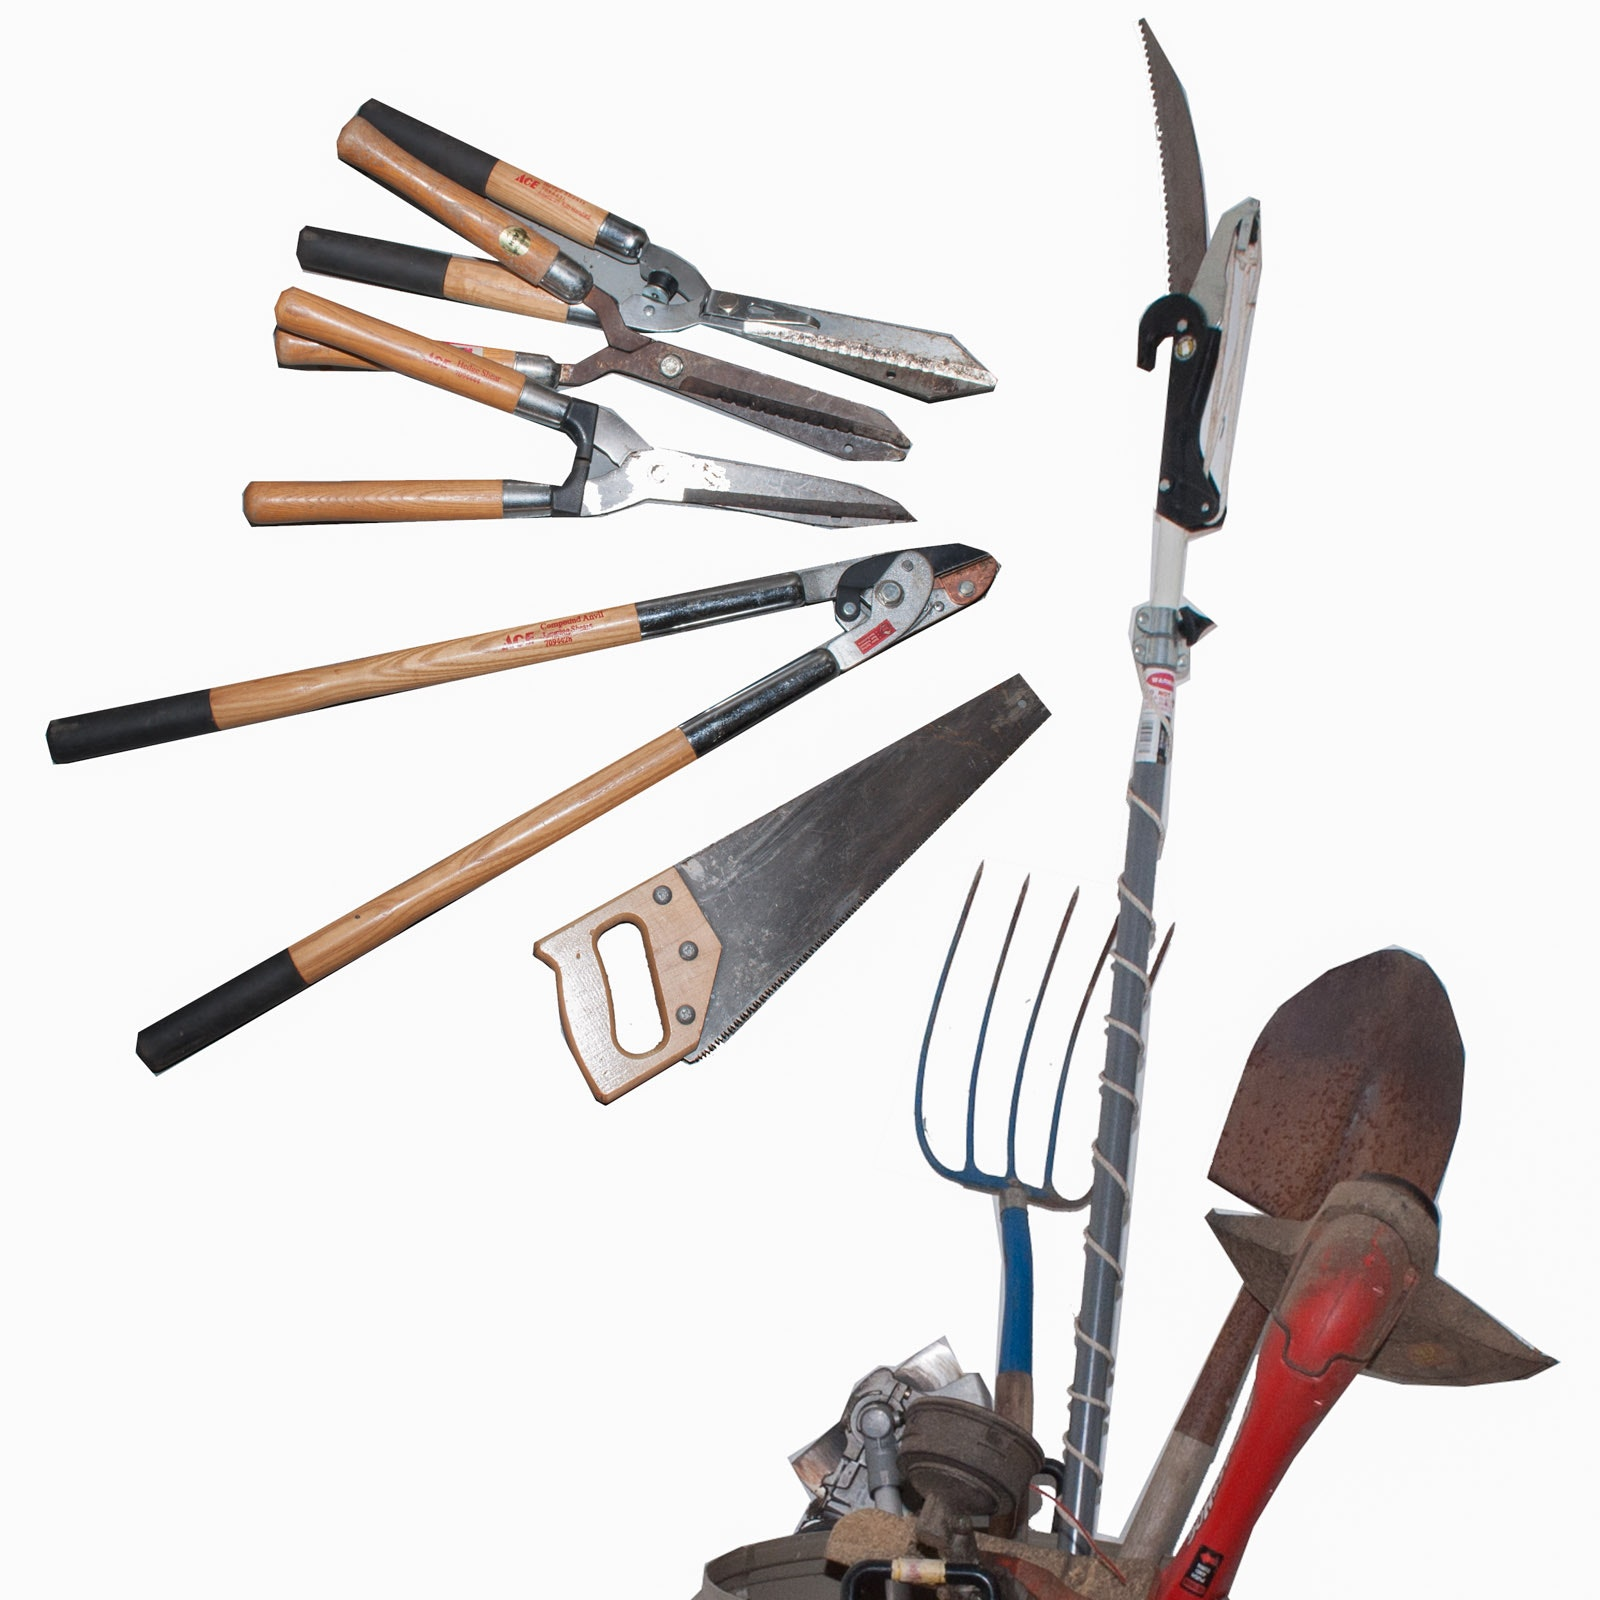 Assortment of Yard Tools and Shears